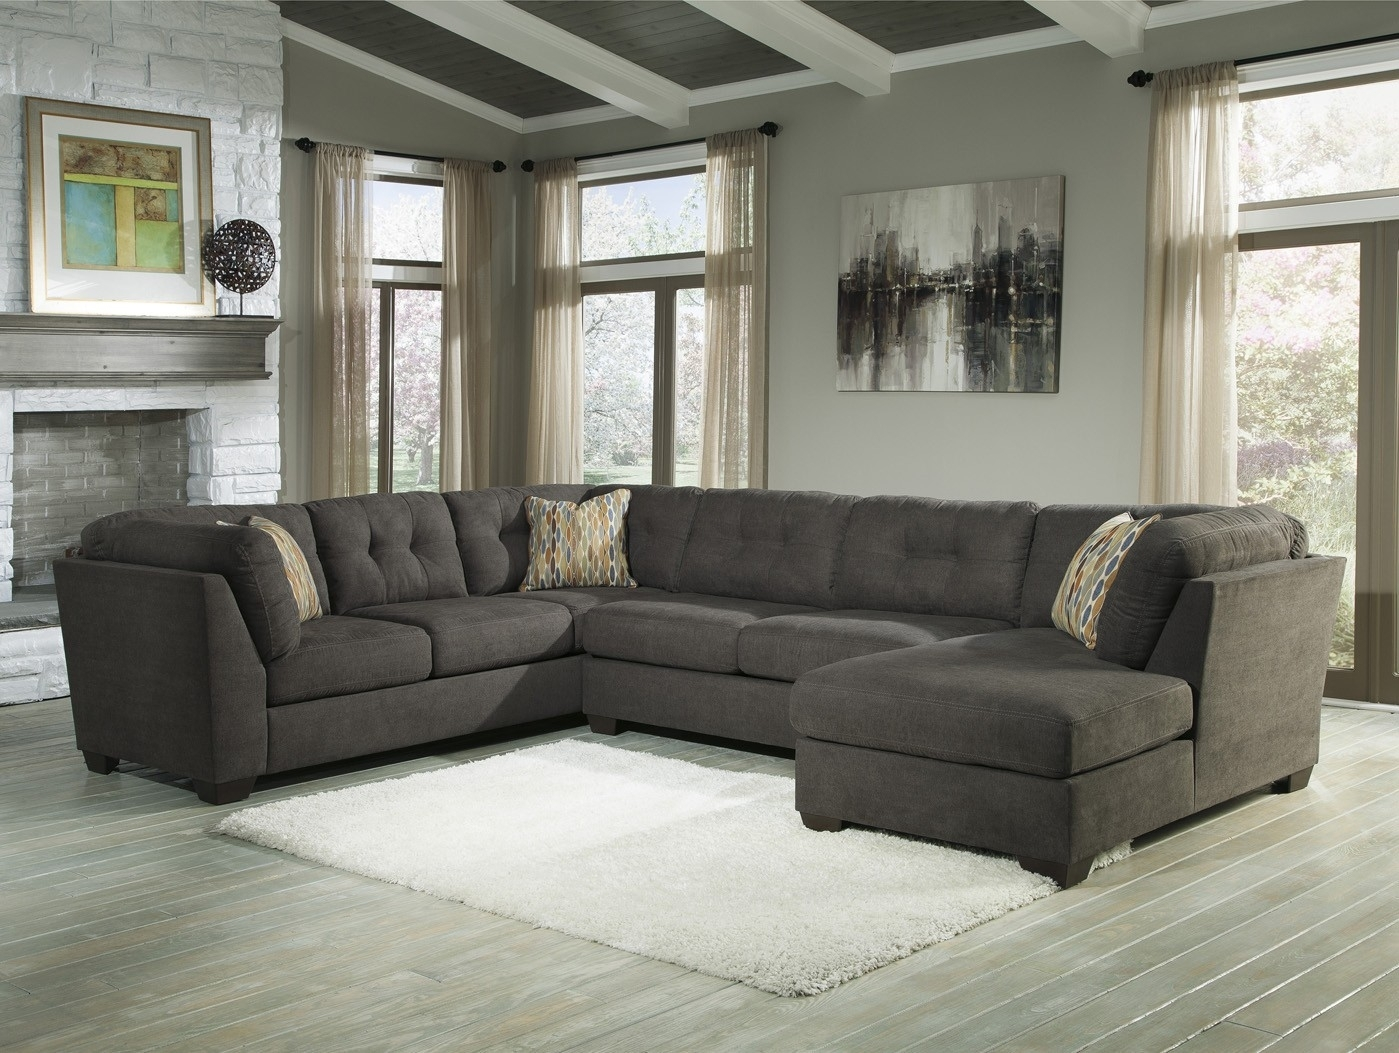 Delta City Steel 3 Piece Sectional Sofa With Right Arm Facing Chaise With Regard To Elk Grove Ca Sectional Sofas (Image 5 of 10)